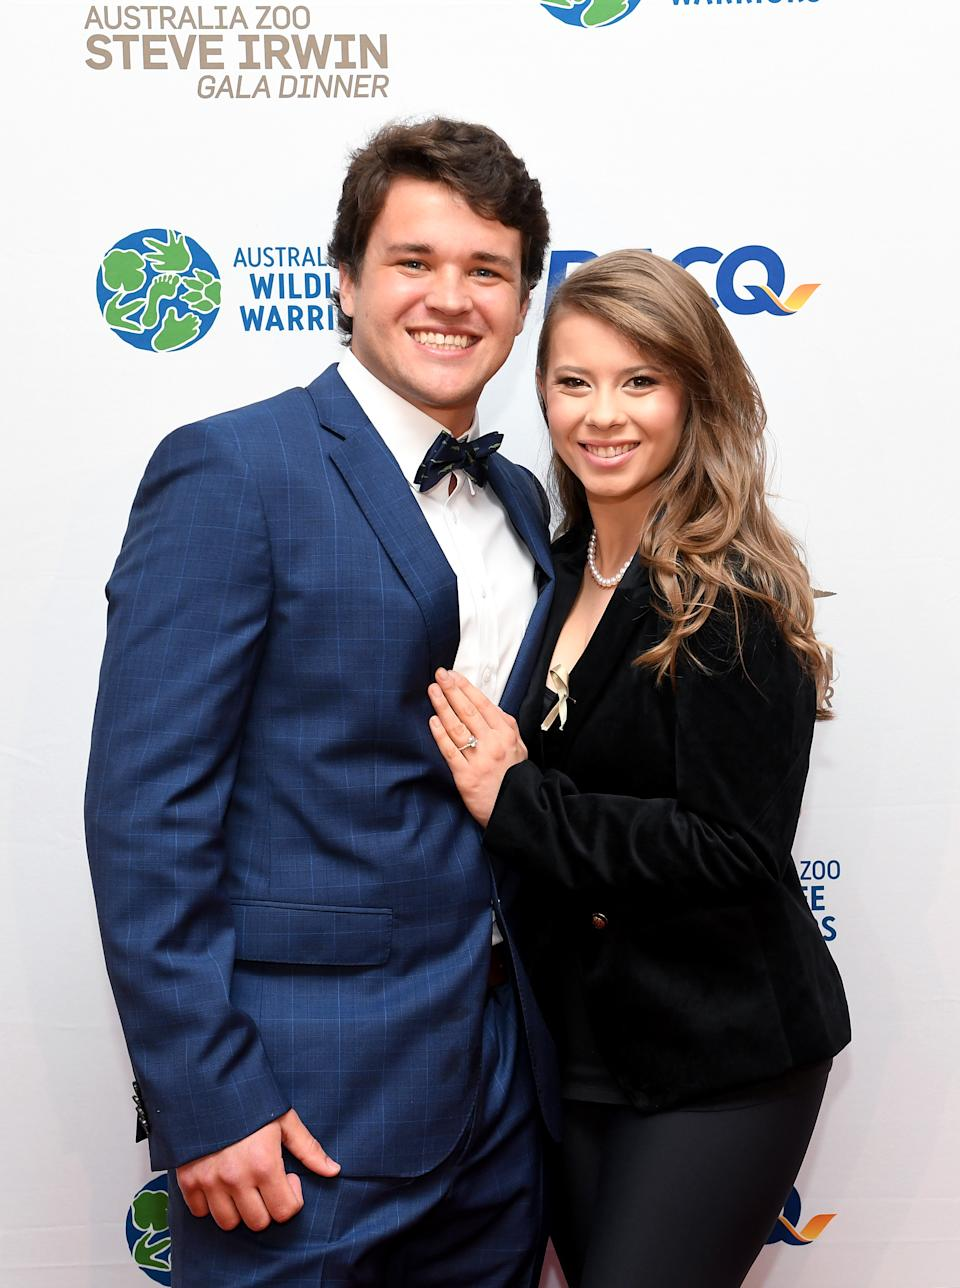 Bindi Irwin poses for a photo with fiance Chandler Powell at the annual Steve Irwin Gala Dinner at Brisbane Convention & Exhibition Centre on November 09, 2019 in Brisbane, Australia.